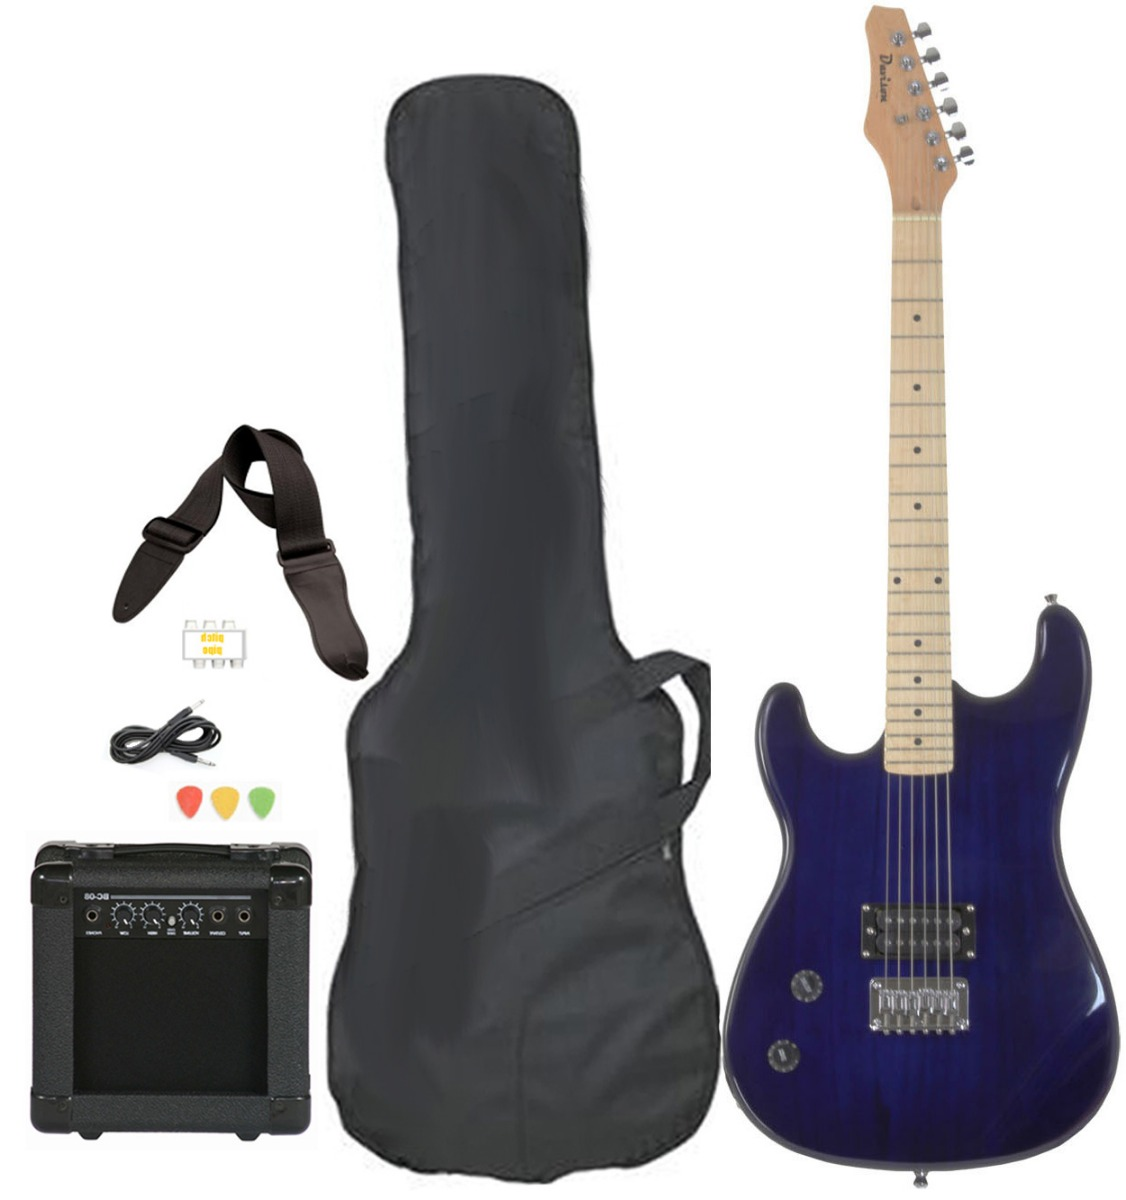 Davison Guitars Electric Guitar Blue Left Handed Full Size With Amp Case Cord Strap And Picks